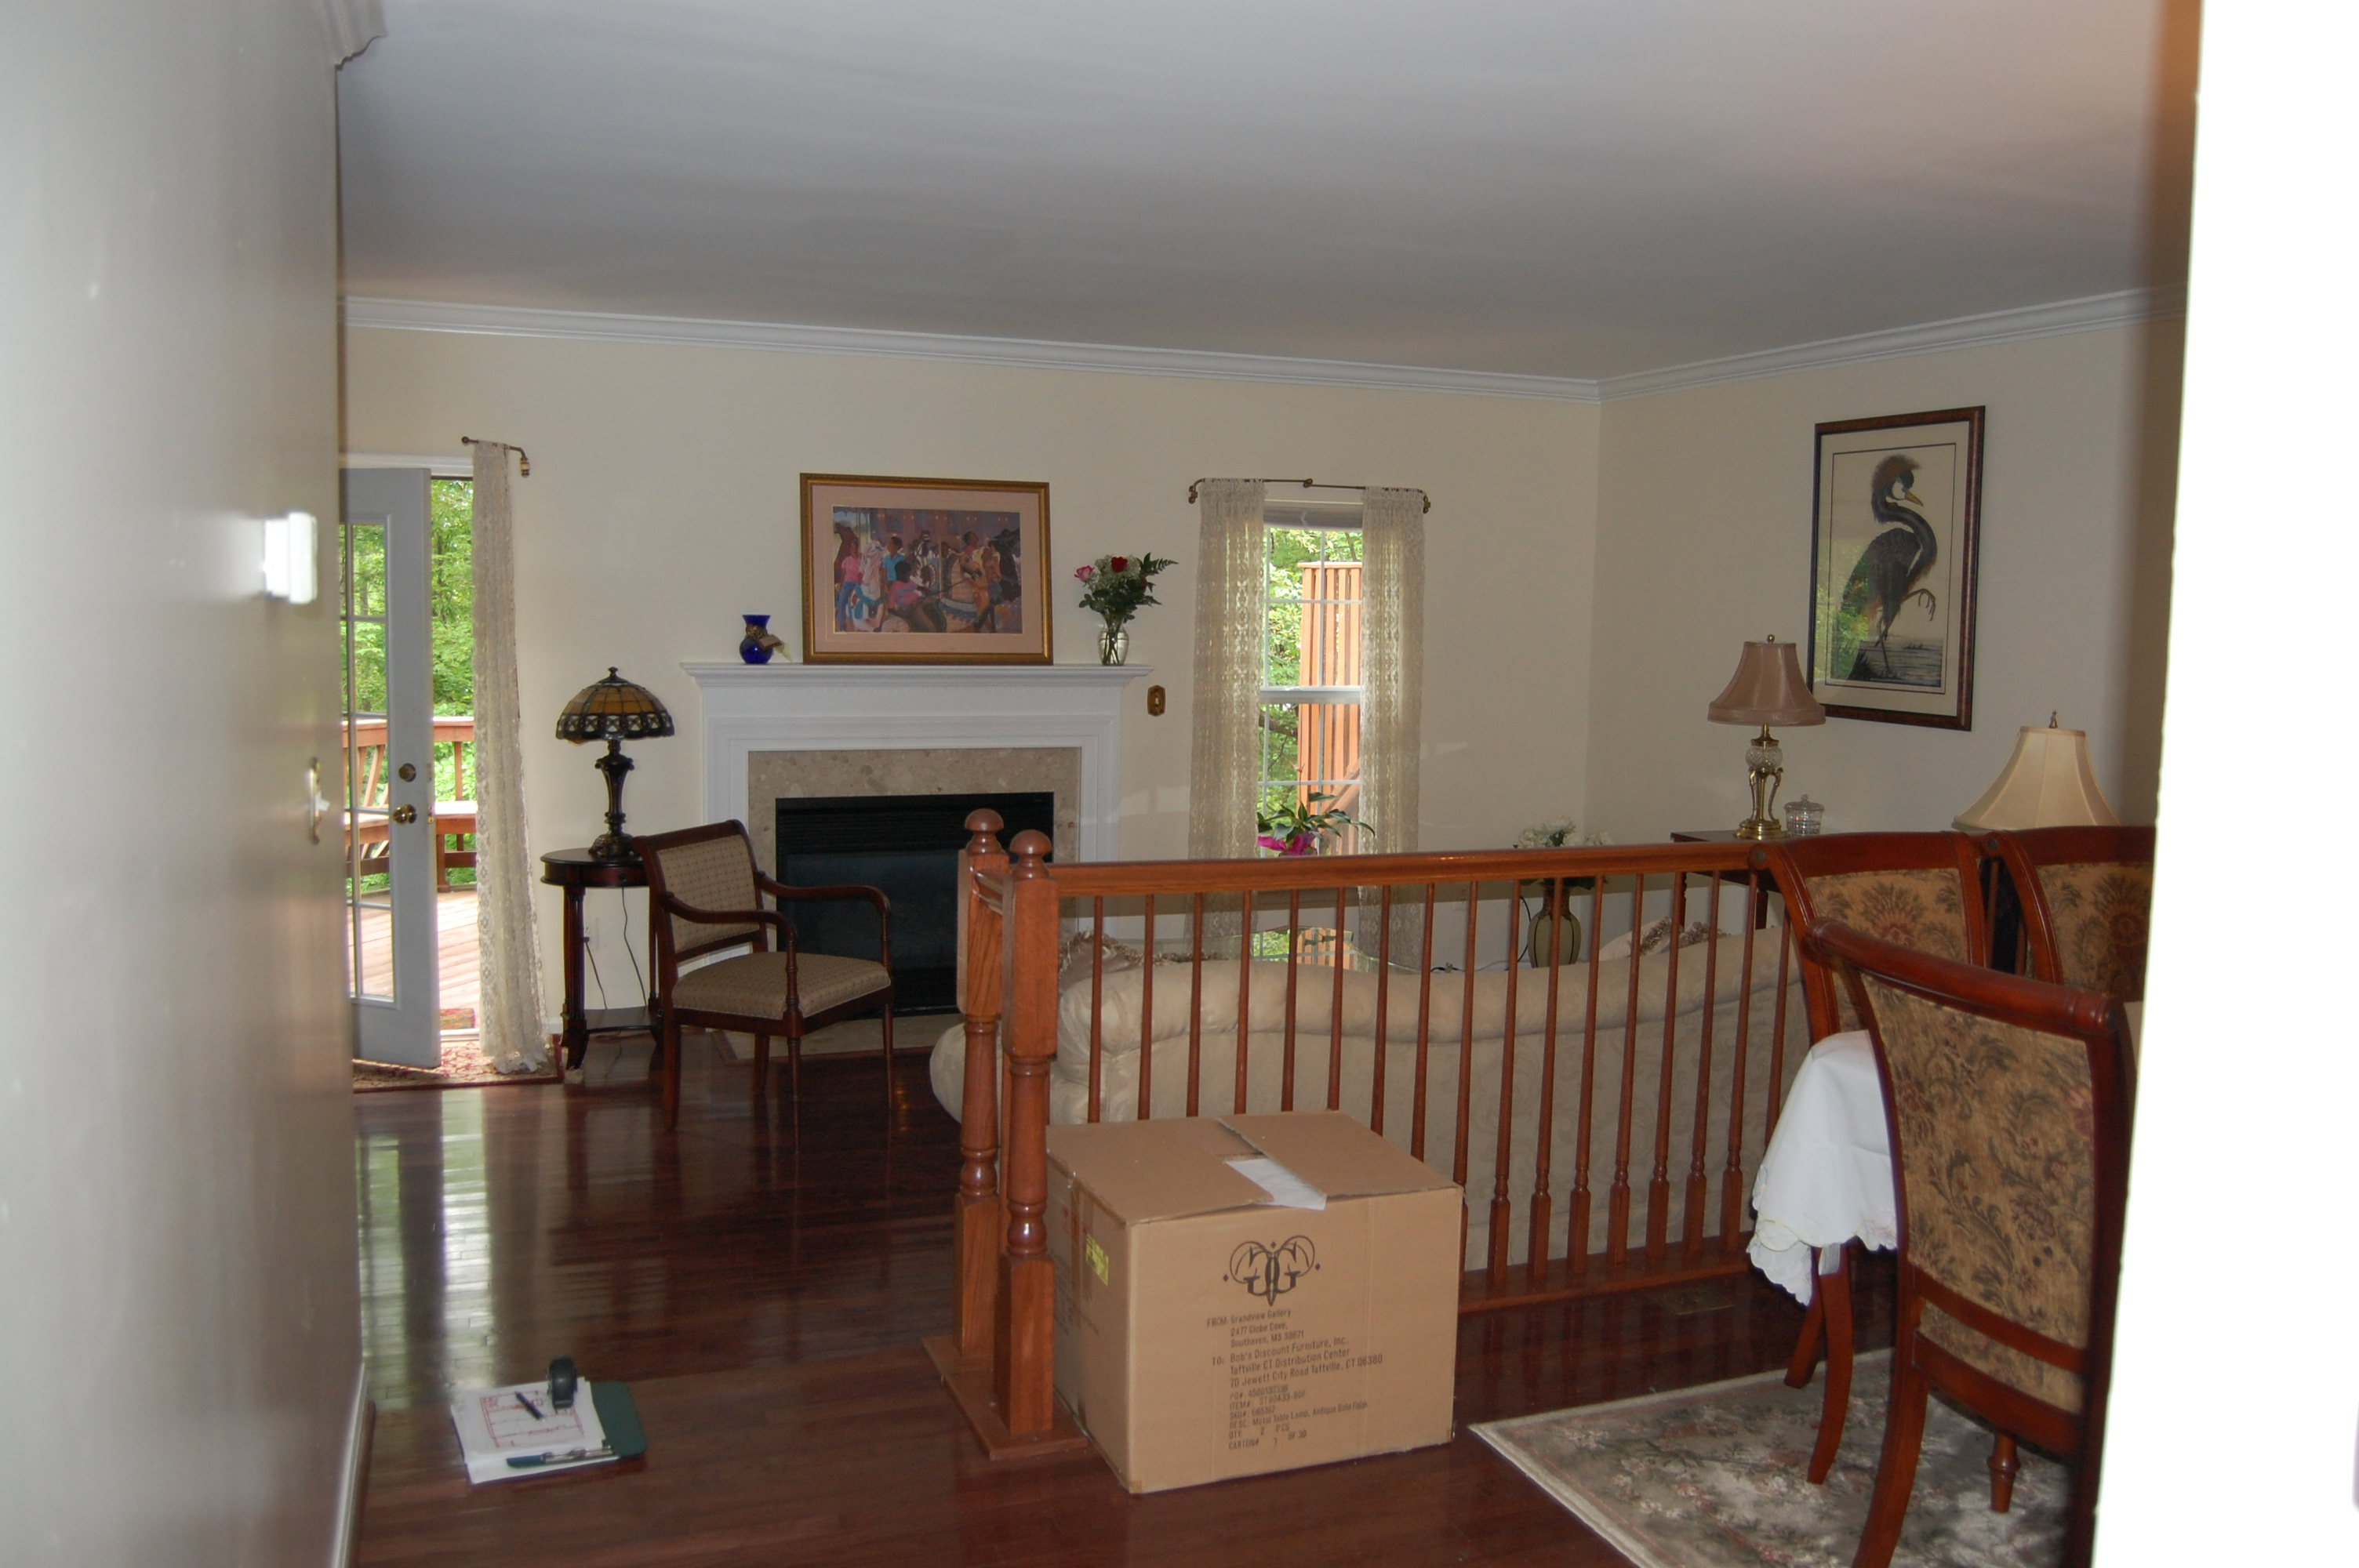 This Photo Is Standing In The Dining Room Looking Into The Living Room. The  Two Spaces Are Divided By A Banister And About An 8u201d Finish Floor  Difference.